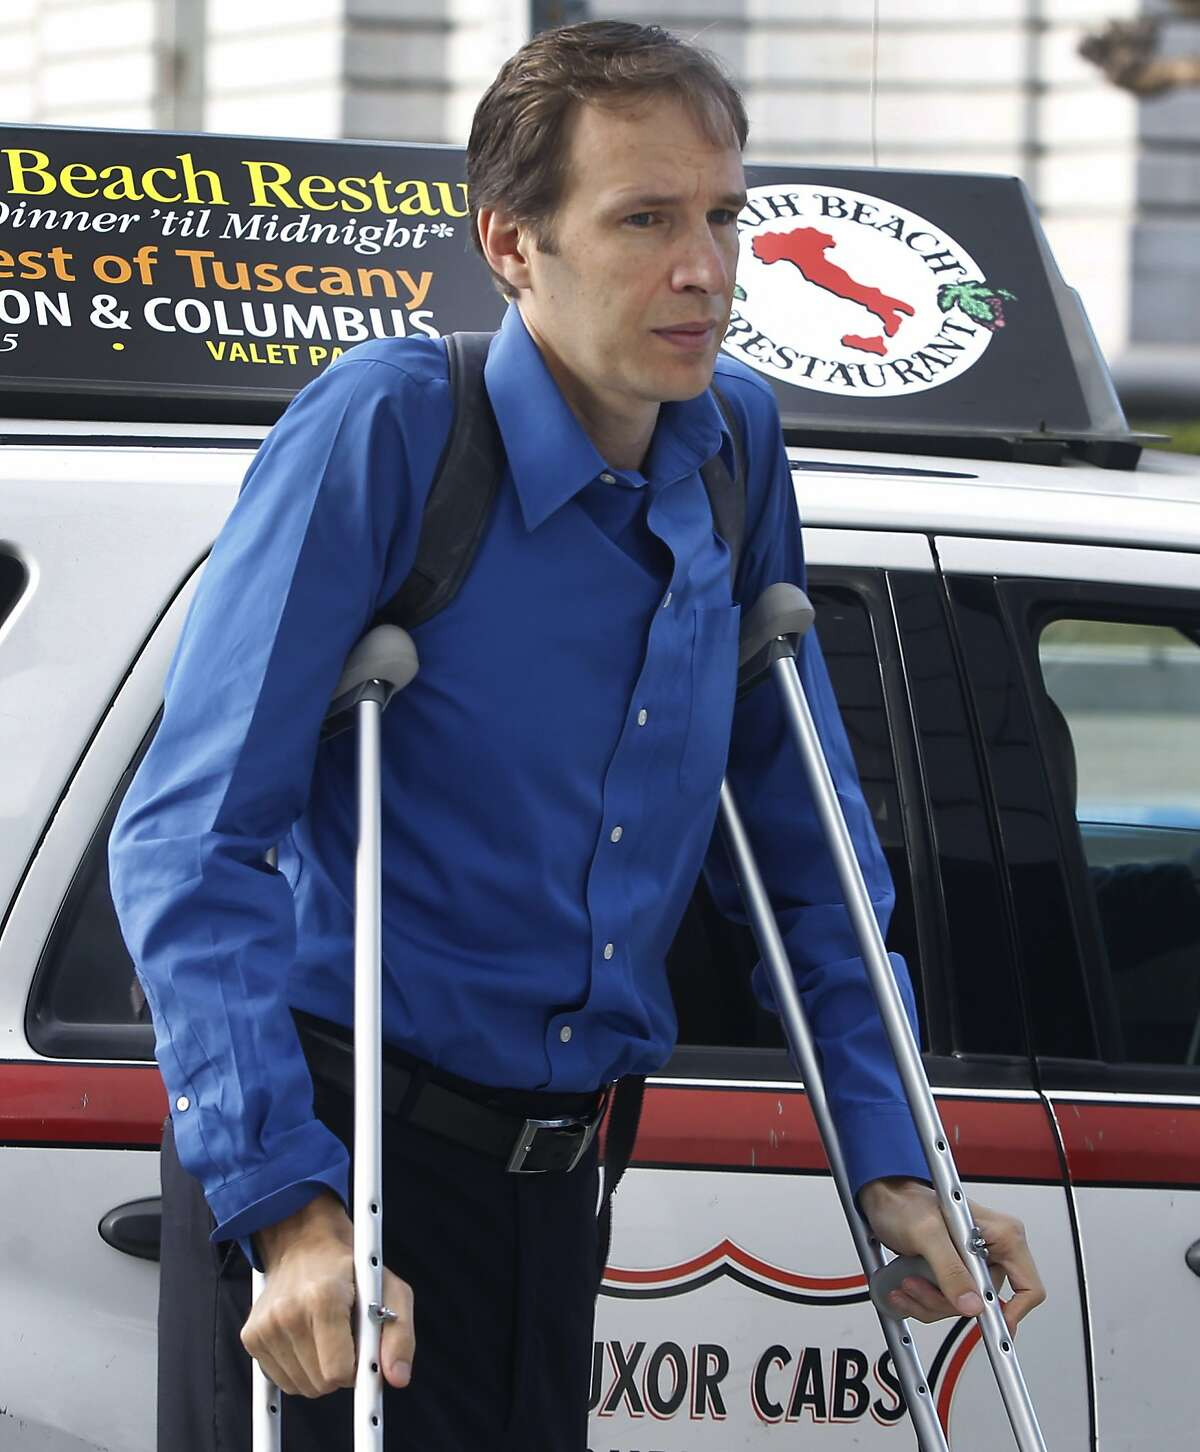 Stephen Findley arrives at San Francisco Superior Court on McAllister Street for the third day of testimony in a trial against his ex-wife Mimi Lee involving custody of their frozen embryos in San Francisco, Calif. on Wednesday, July 15, 2015.